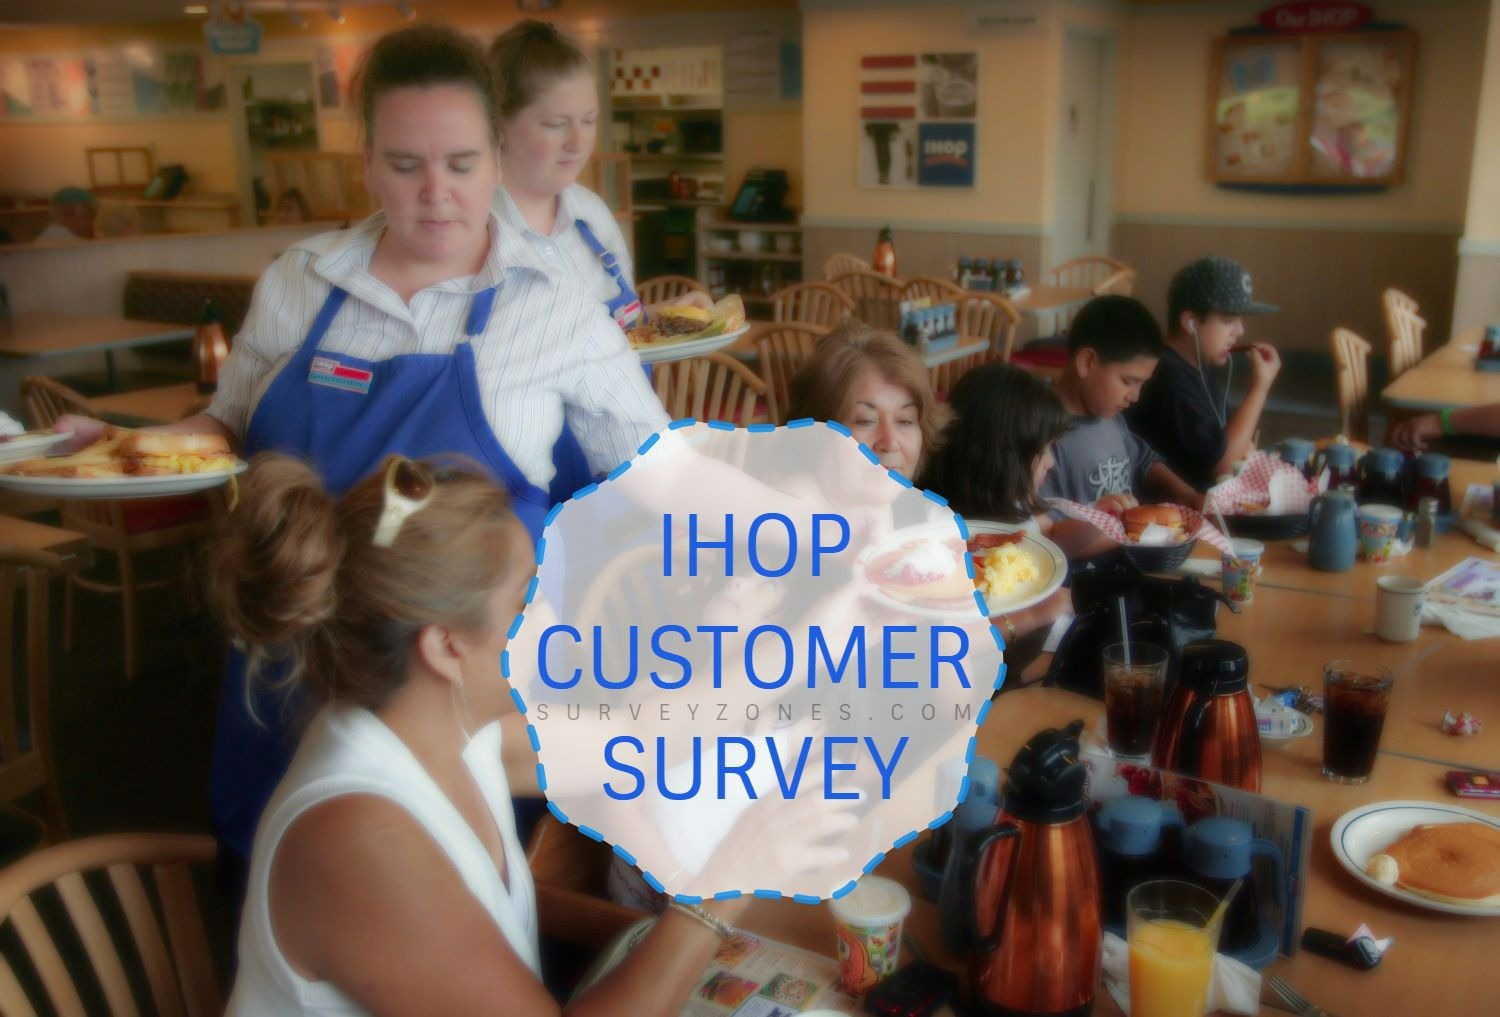 IHOP Customer Survey